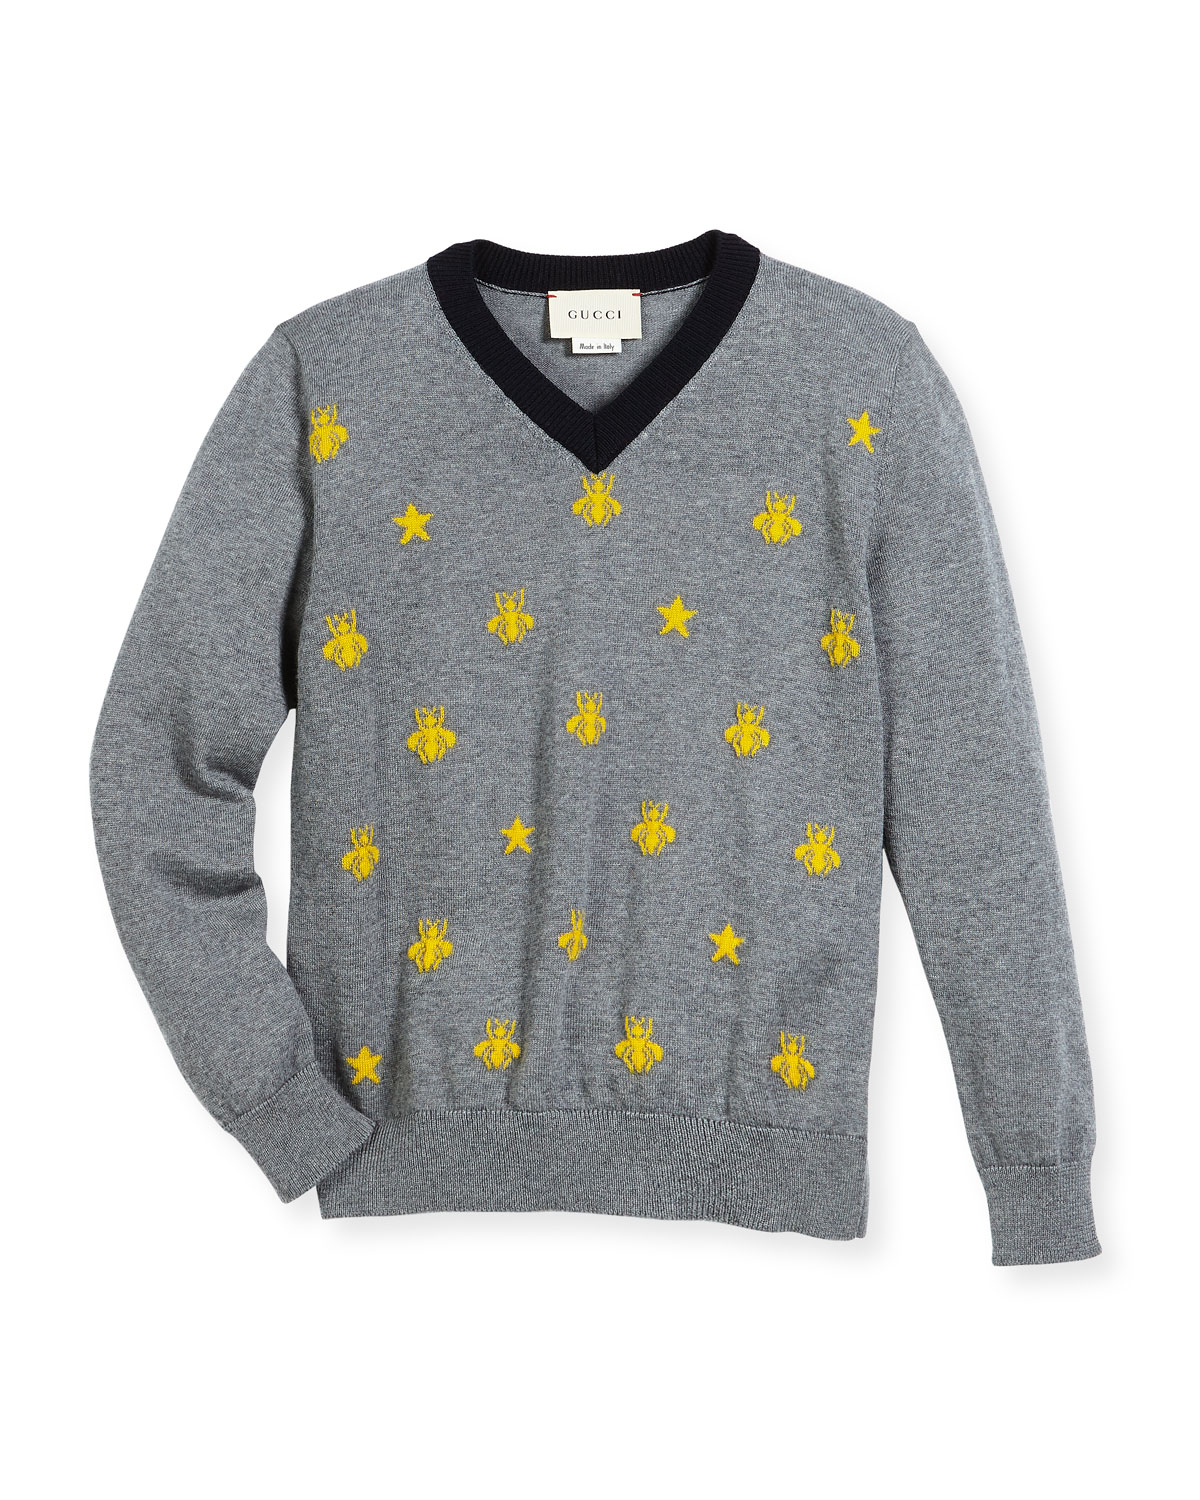 96df24429b7 Gucci Long-Sleeve Bees   Stars Merino Wool Sweater